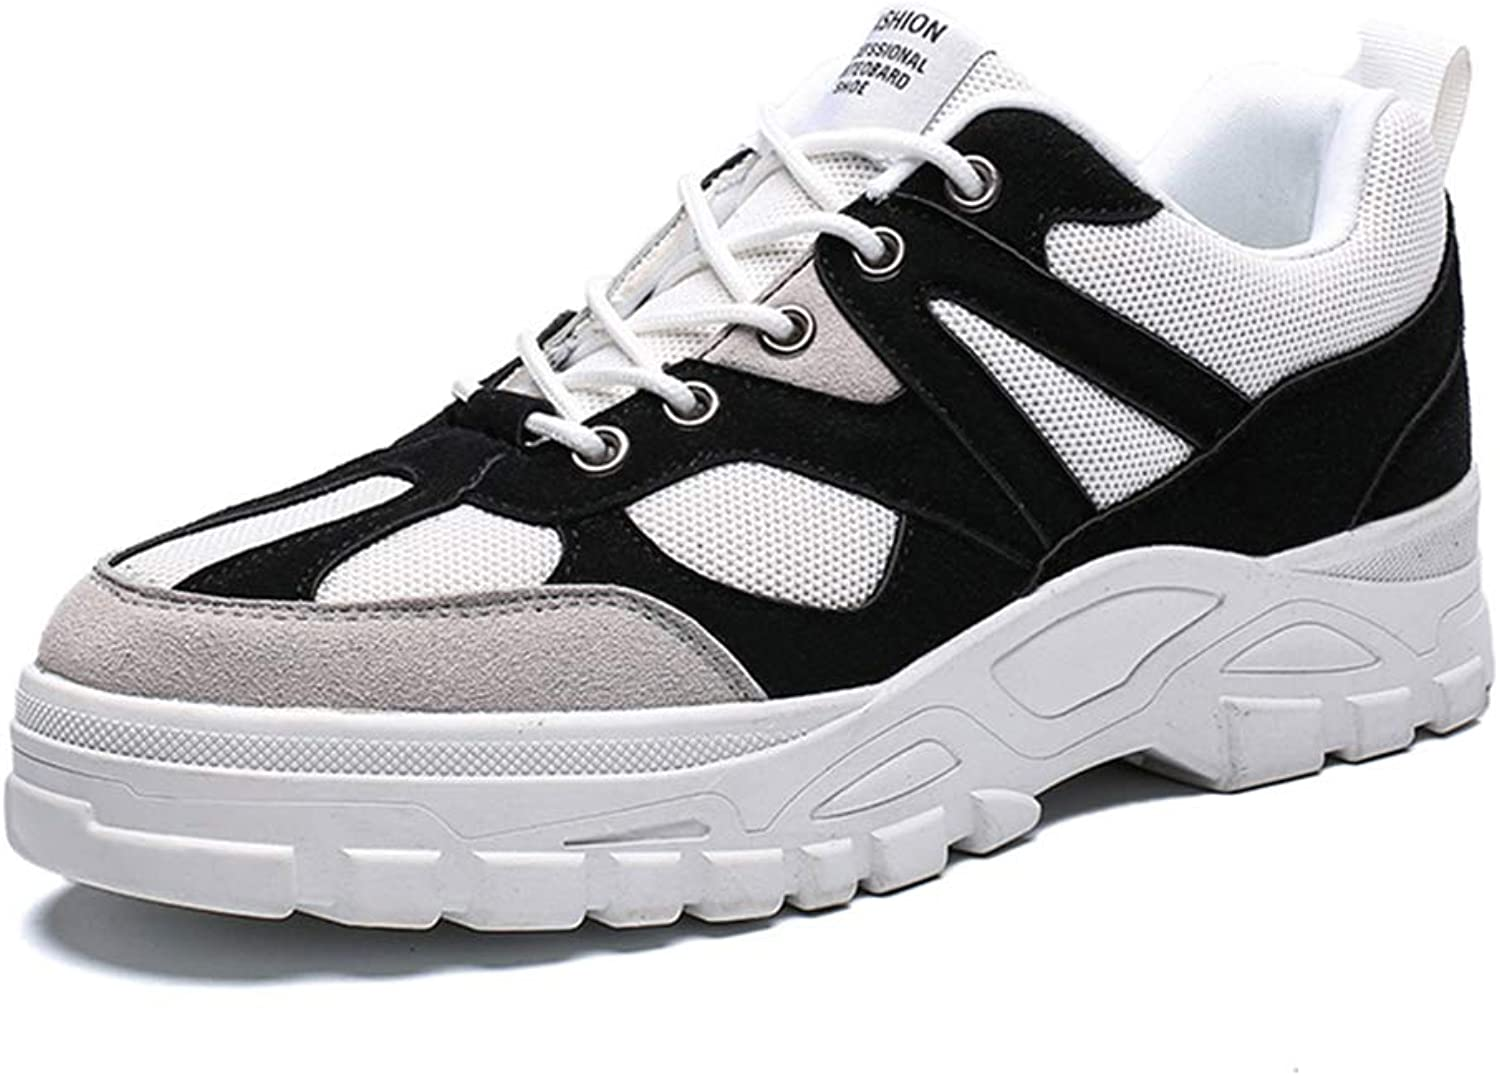 Mzq-yq Spring Men's shoes Sports shoes Korean Version Of The Trend Of Casual Canvas shoes Students Wild High Tide shoes